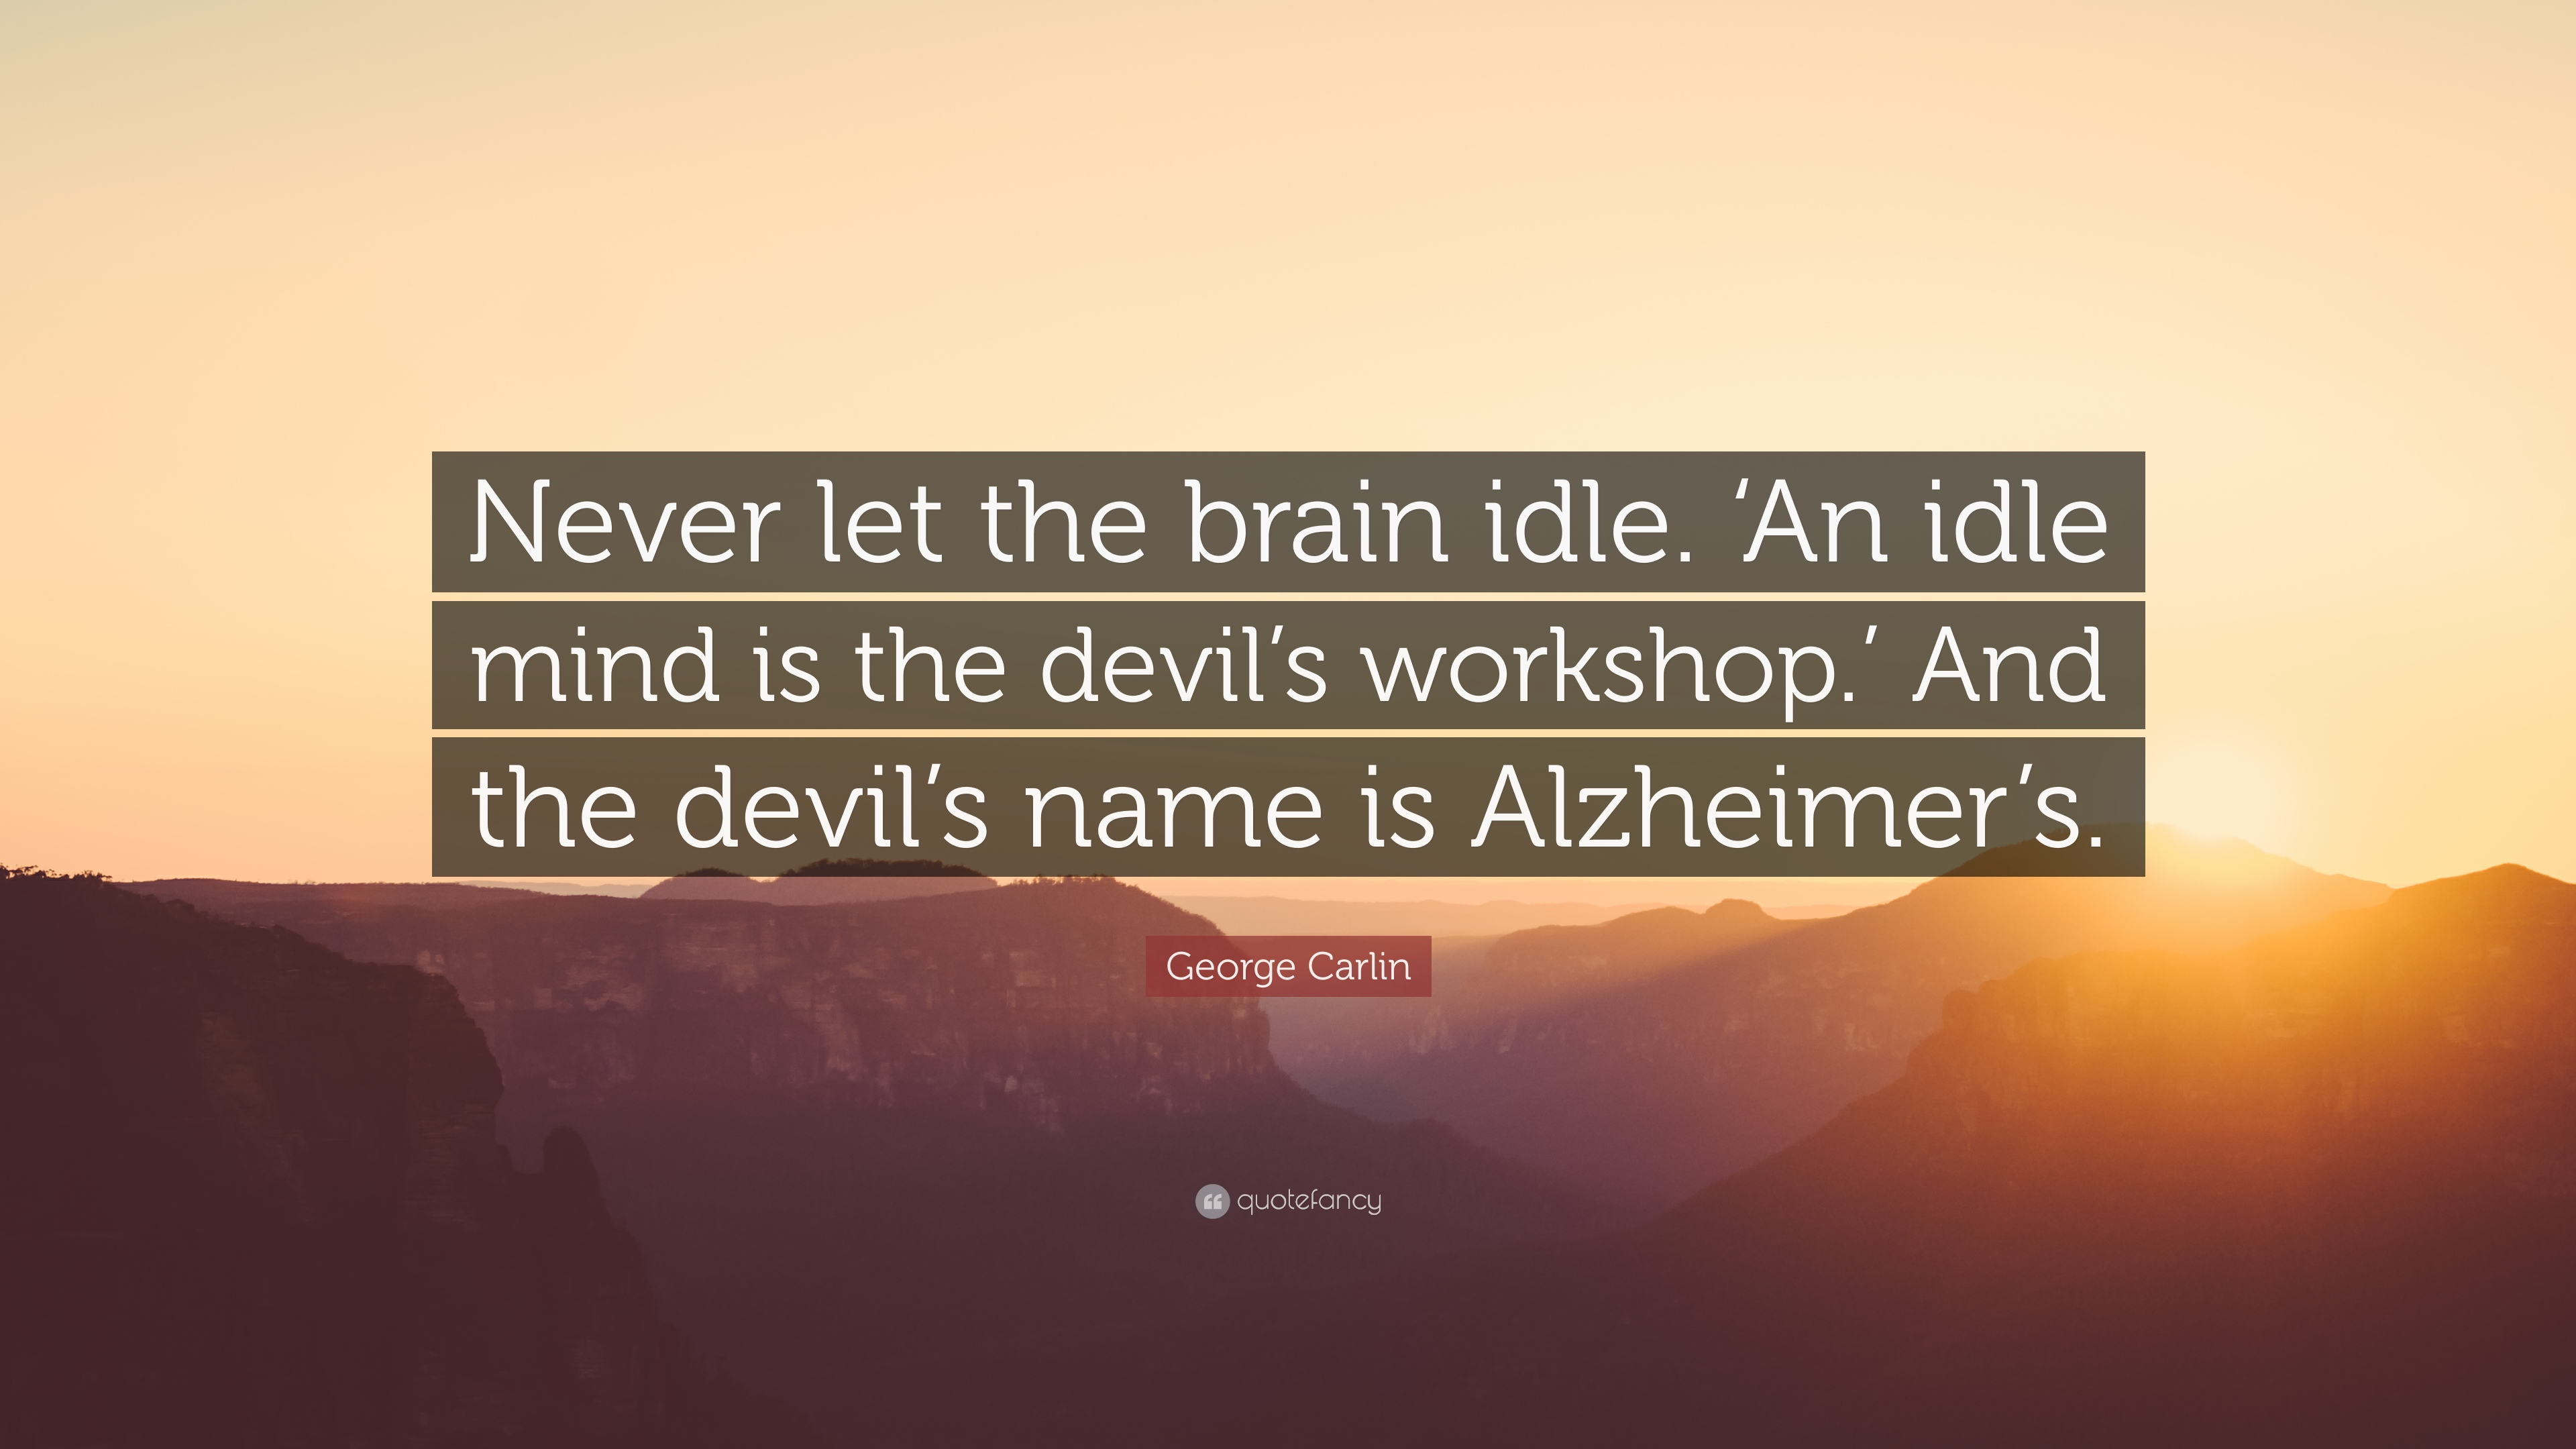 idle mind is a devils workshop (about devils, mind) an idle mind is the devil's workshop more english proverbs: do unto others as you would have them do unto you english you never miss a slice from a cut loaf english when it rains, it pours english plenty know good ale, but don't know much after that.